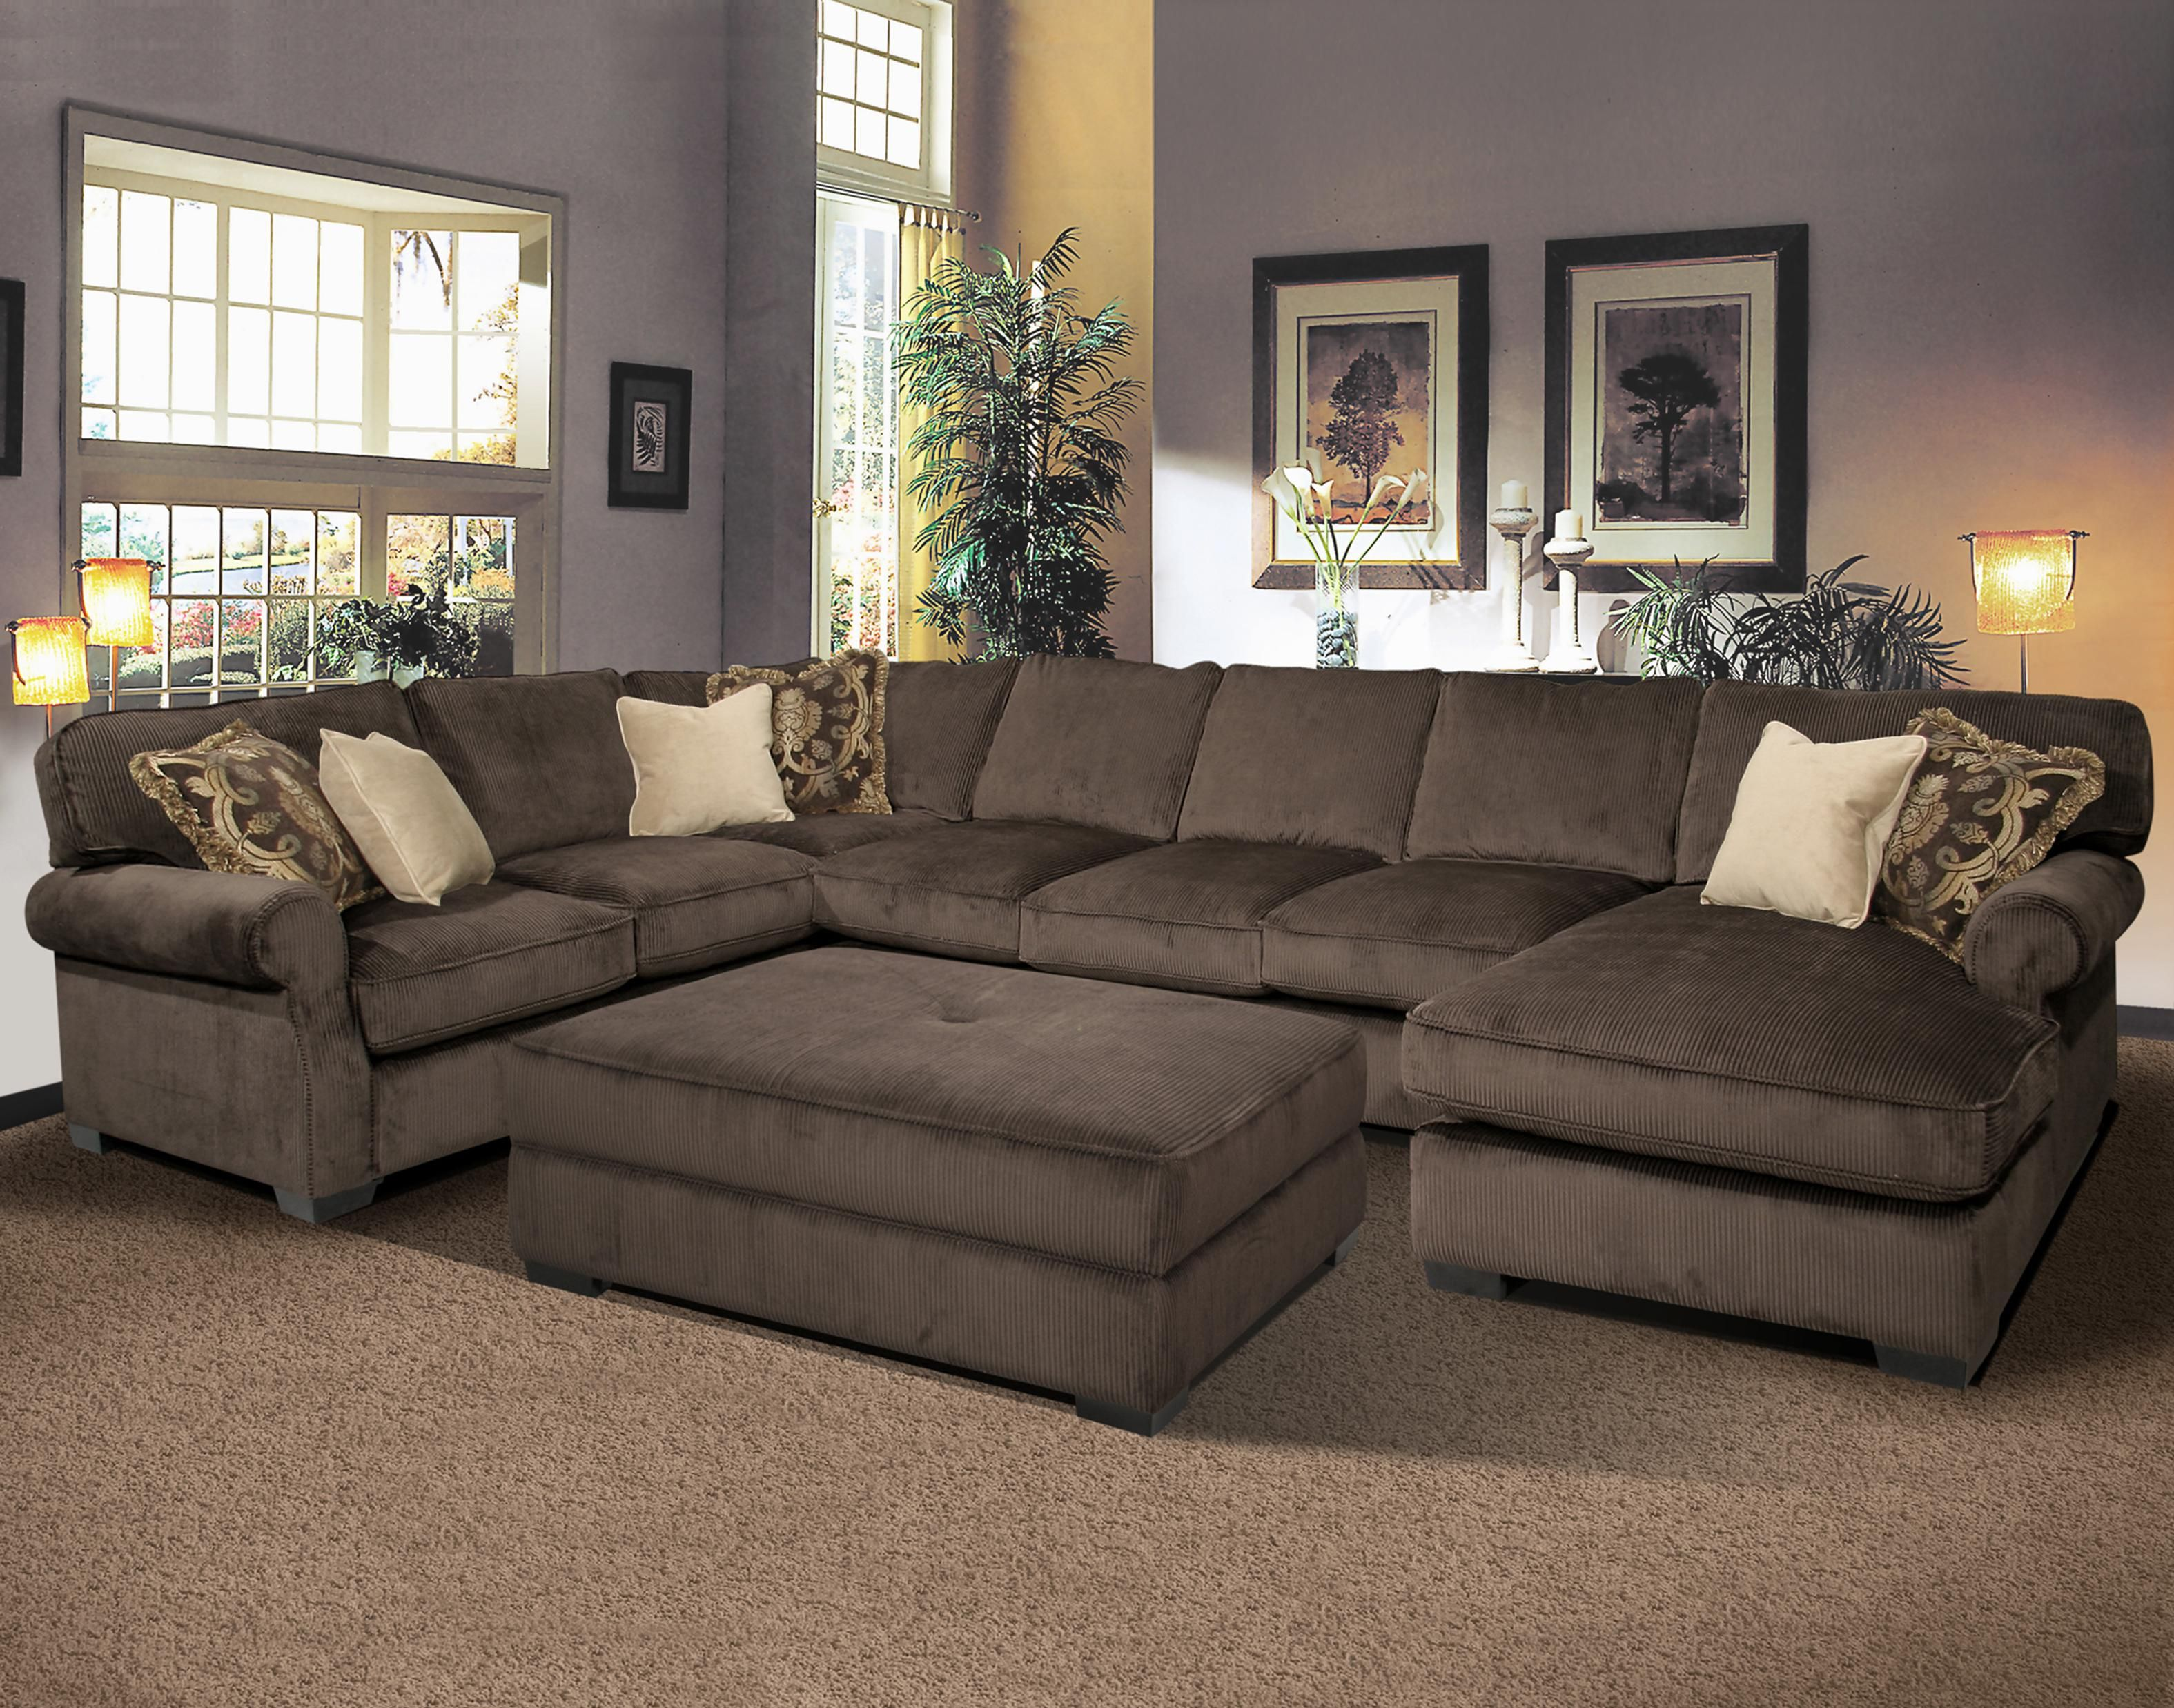 Big Sofa San Juan Big And Comfy Grand Island Large 7 Seat Sectional Sofa With Right